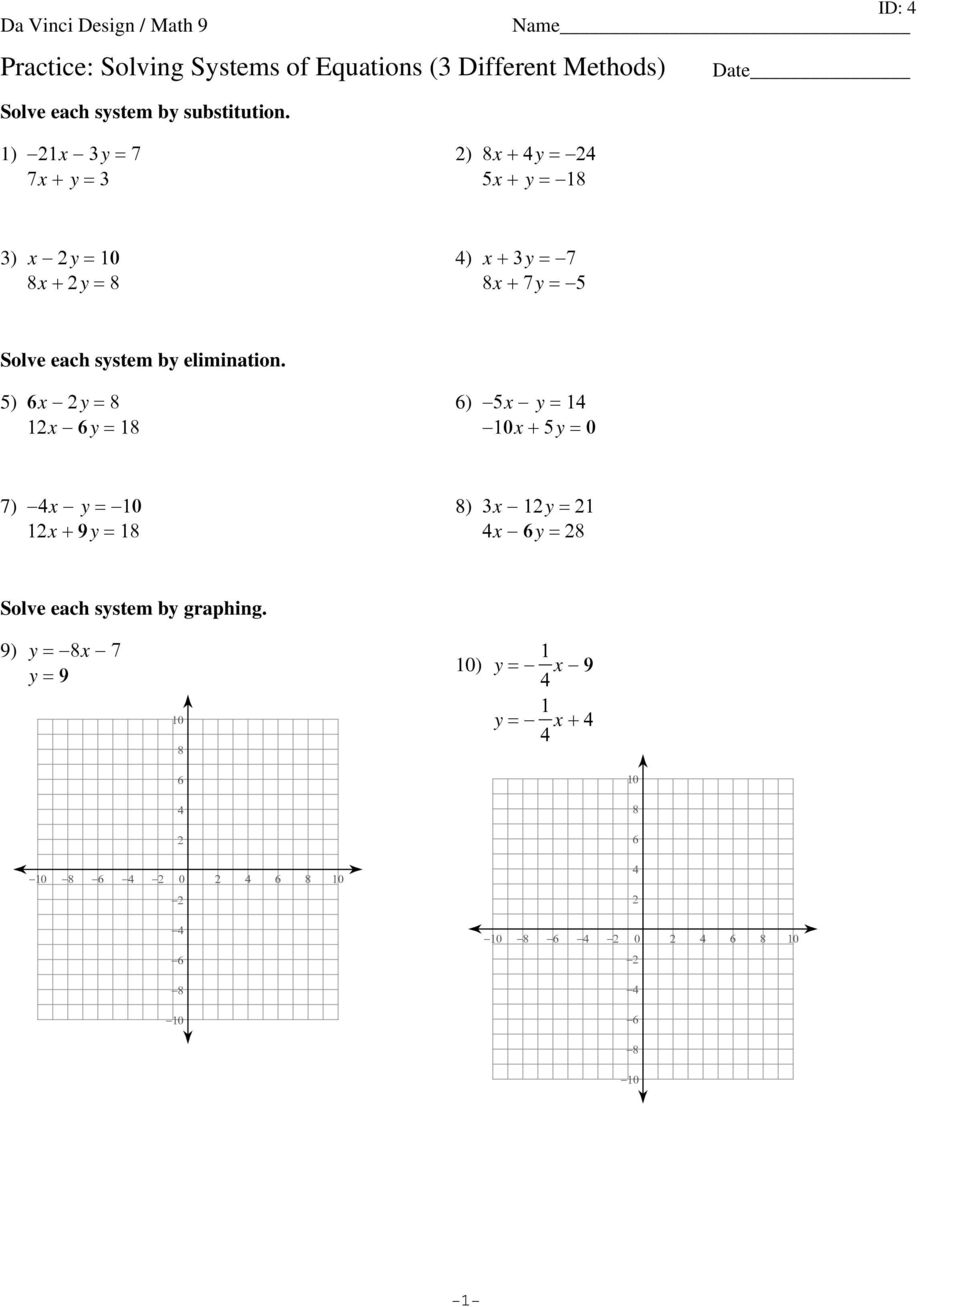 Practice: Solving Systems Of Equations (3 Different Methods